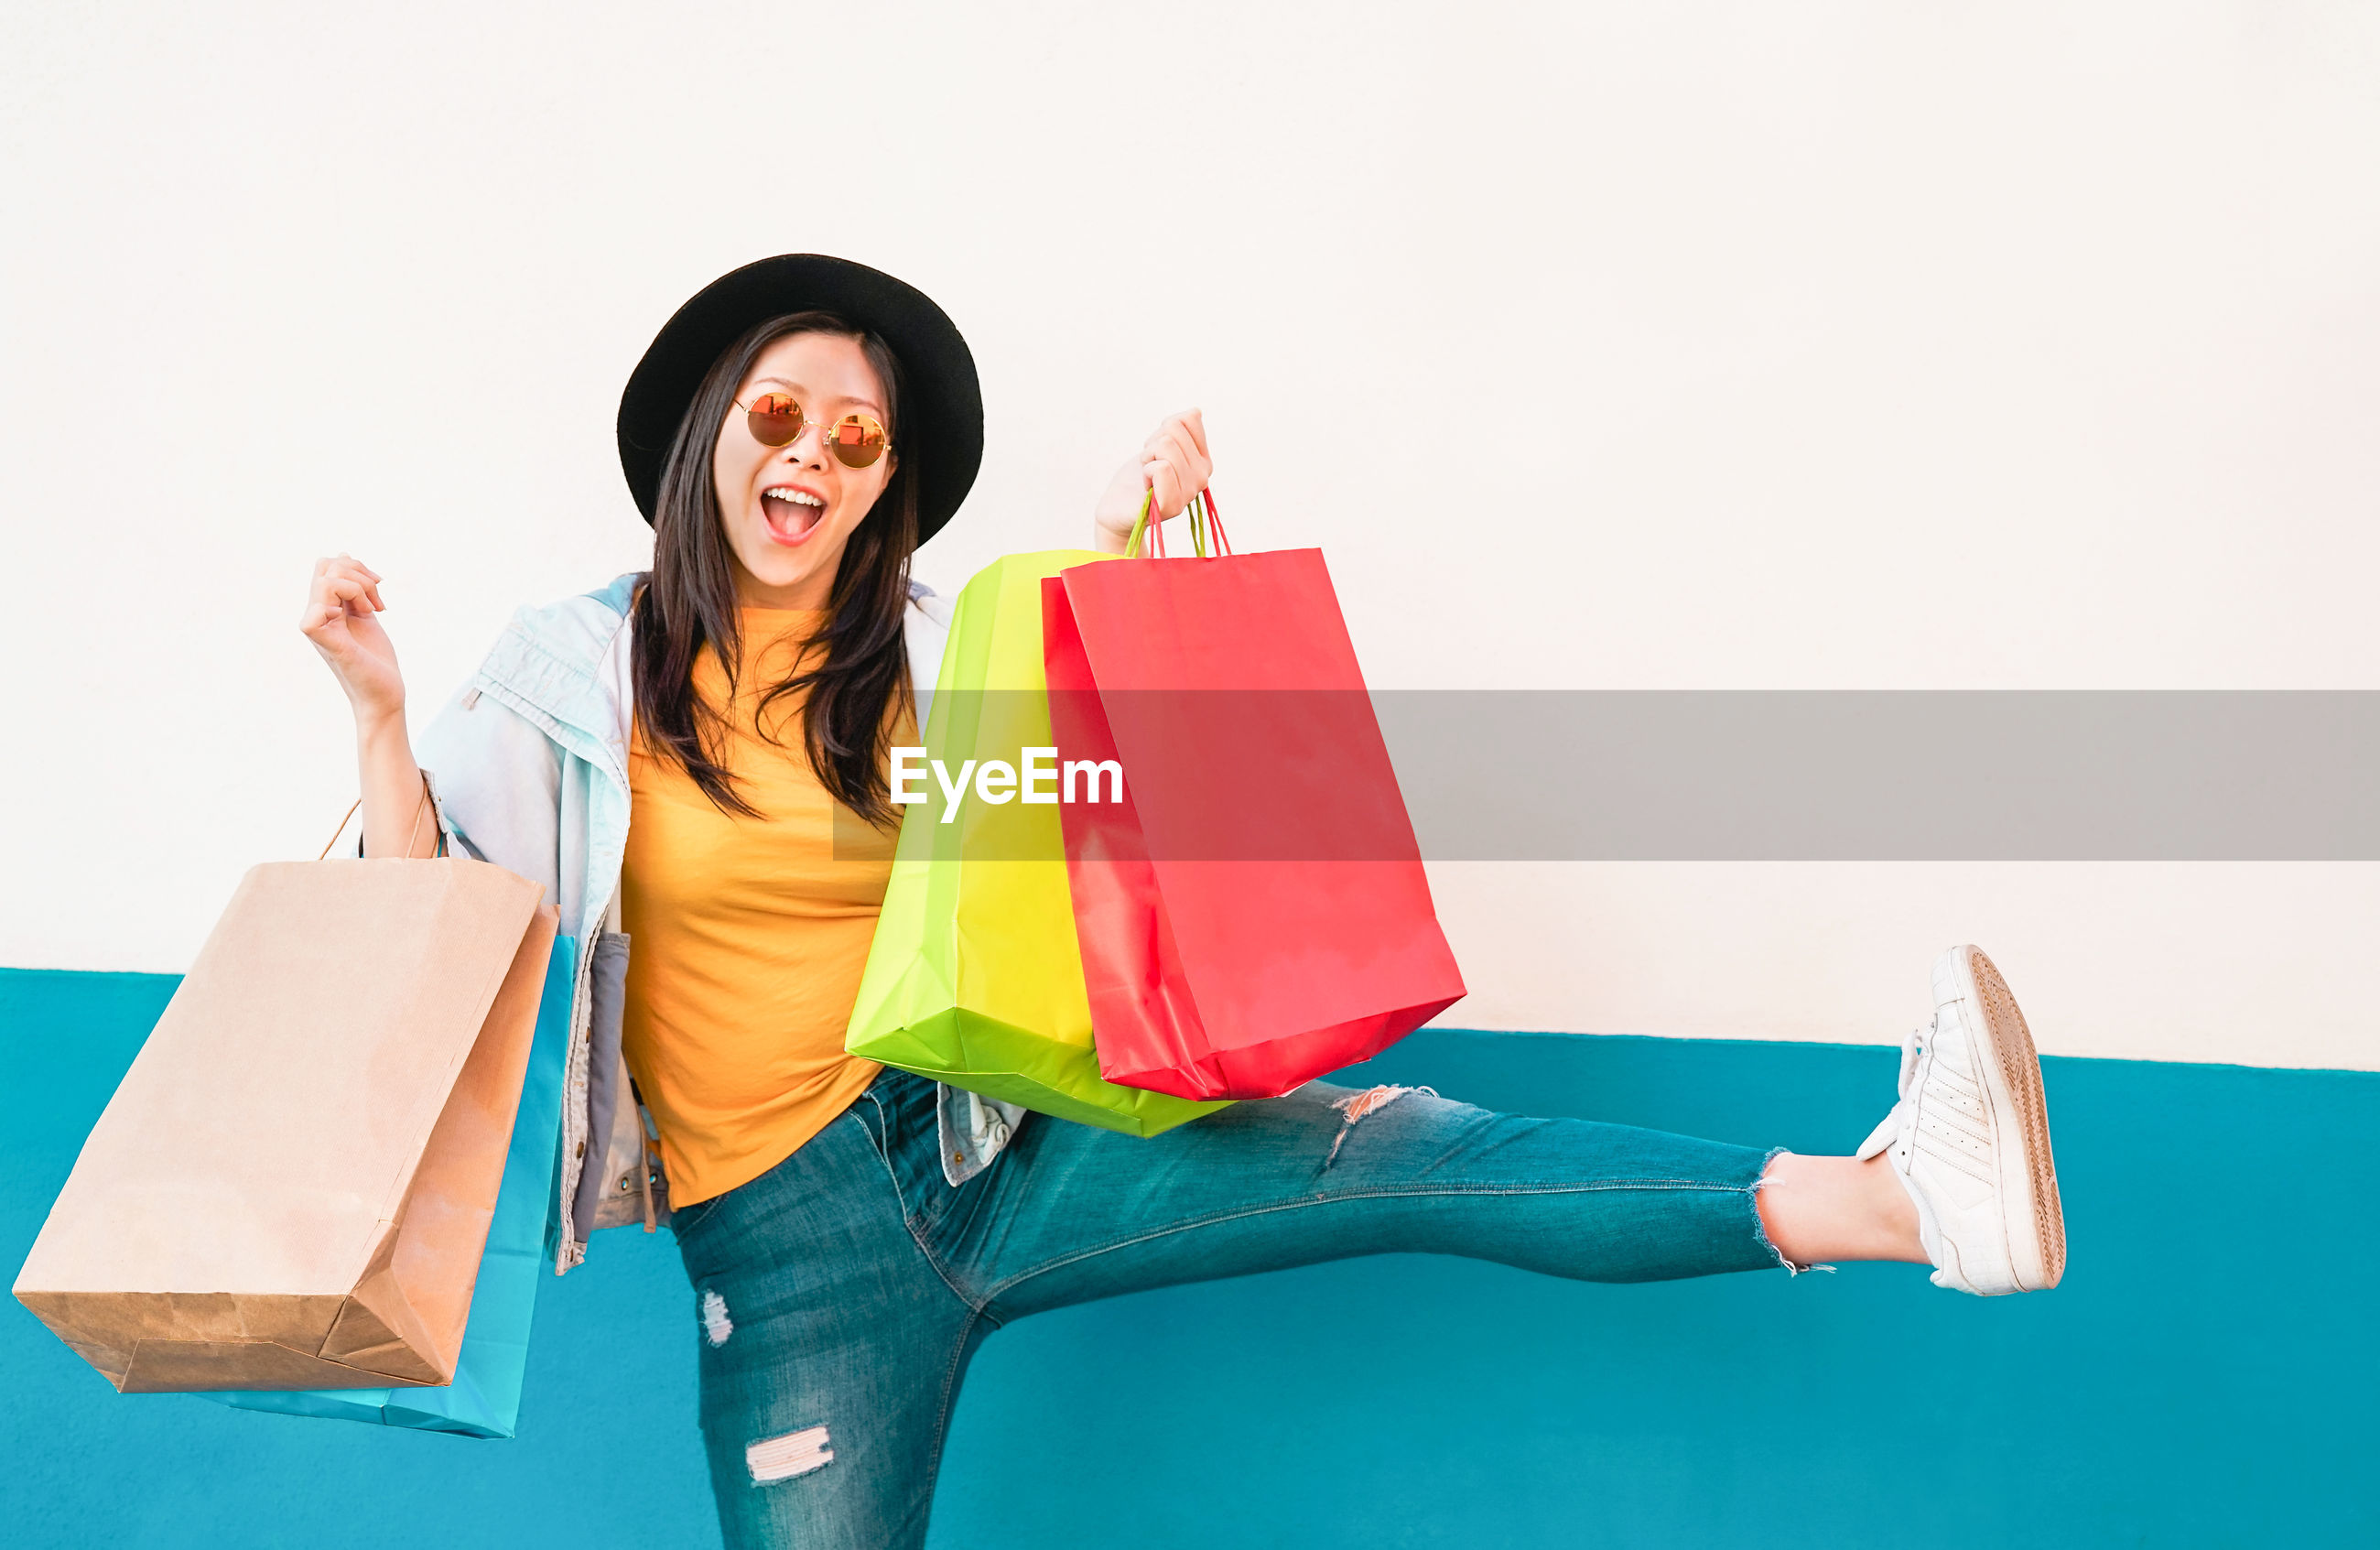 Young woman wearing sunglasses while holding shopping bags against wall